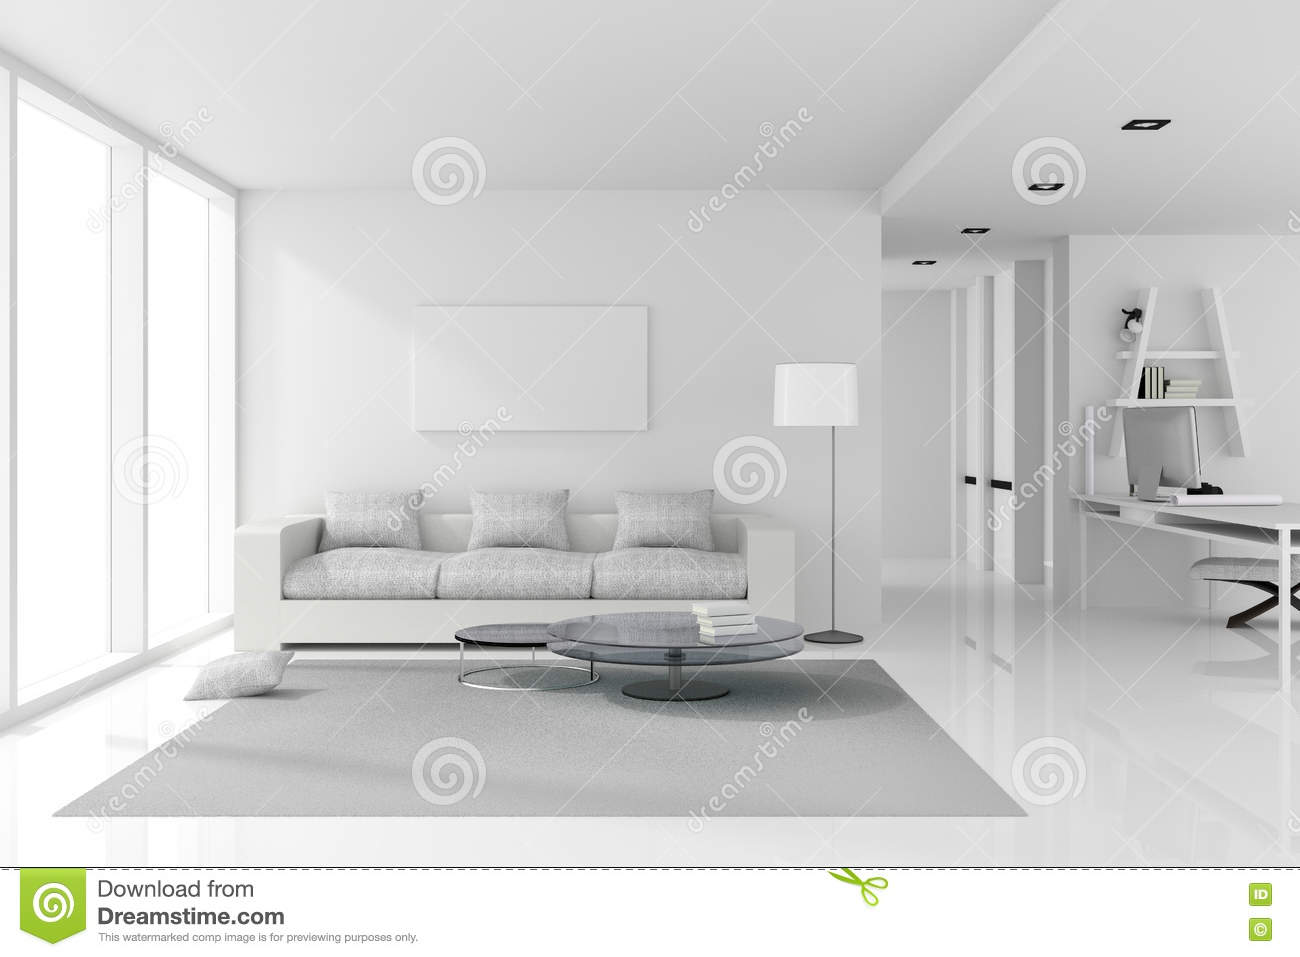 3d Rendering Illustration Of White Interior Design Of Living Room